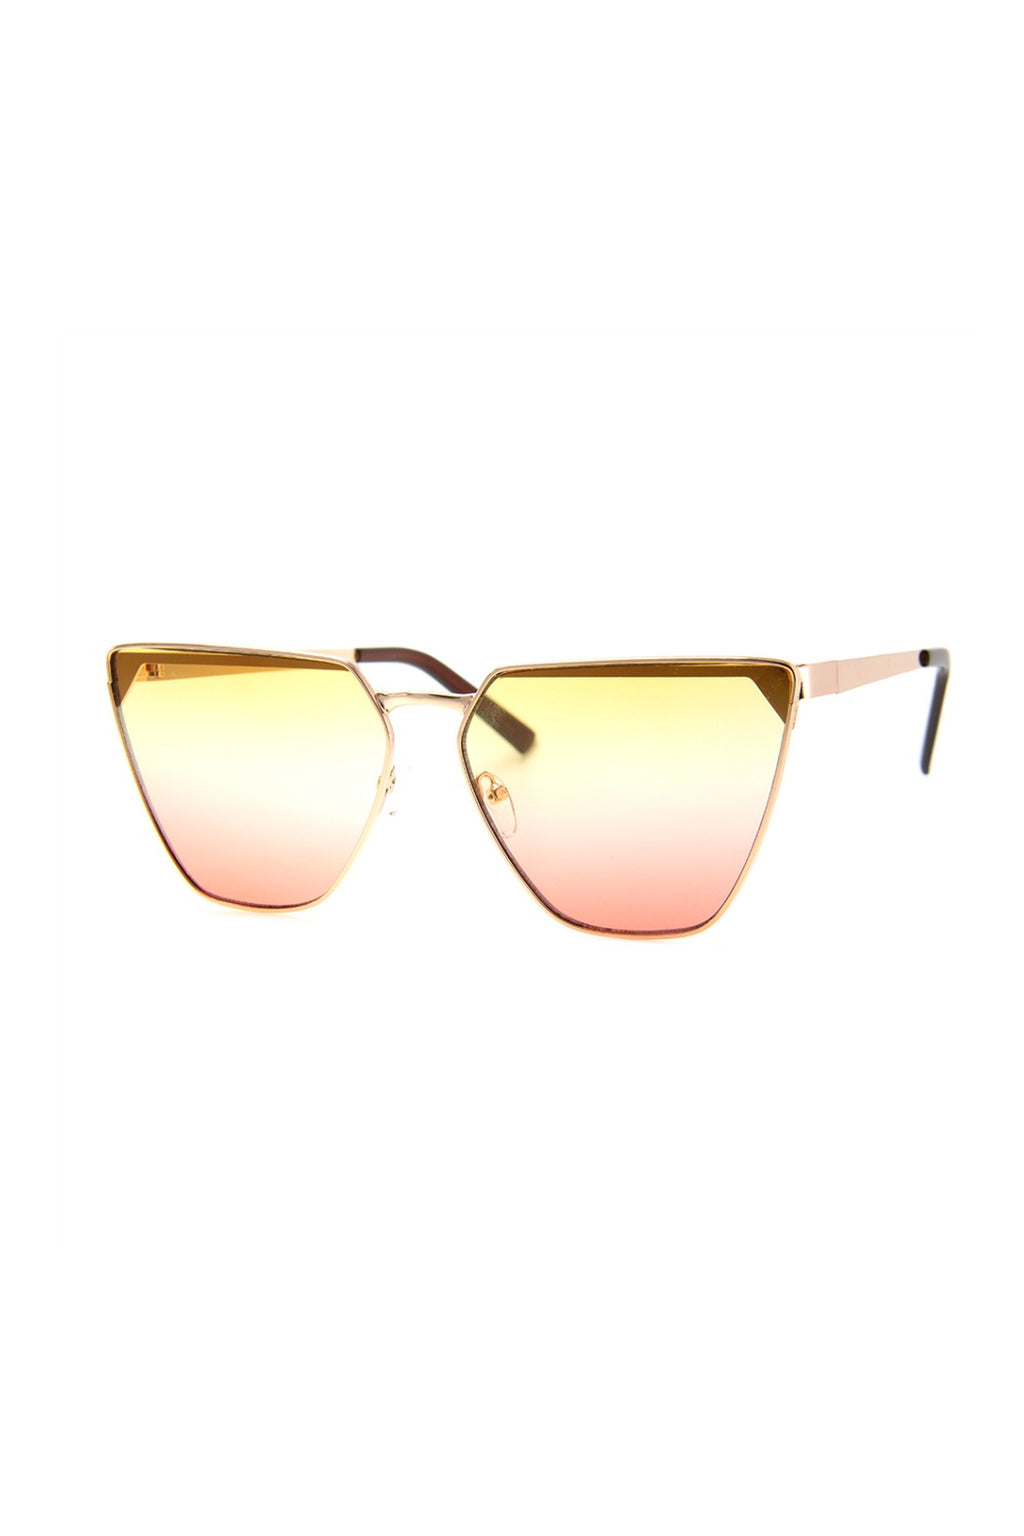 Seize Sunnies in Rose Gold